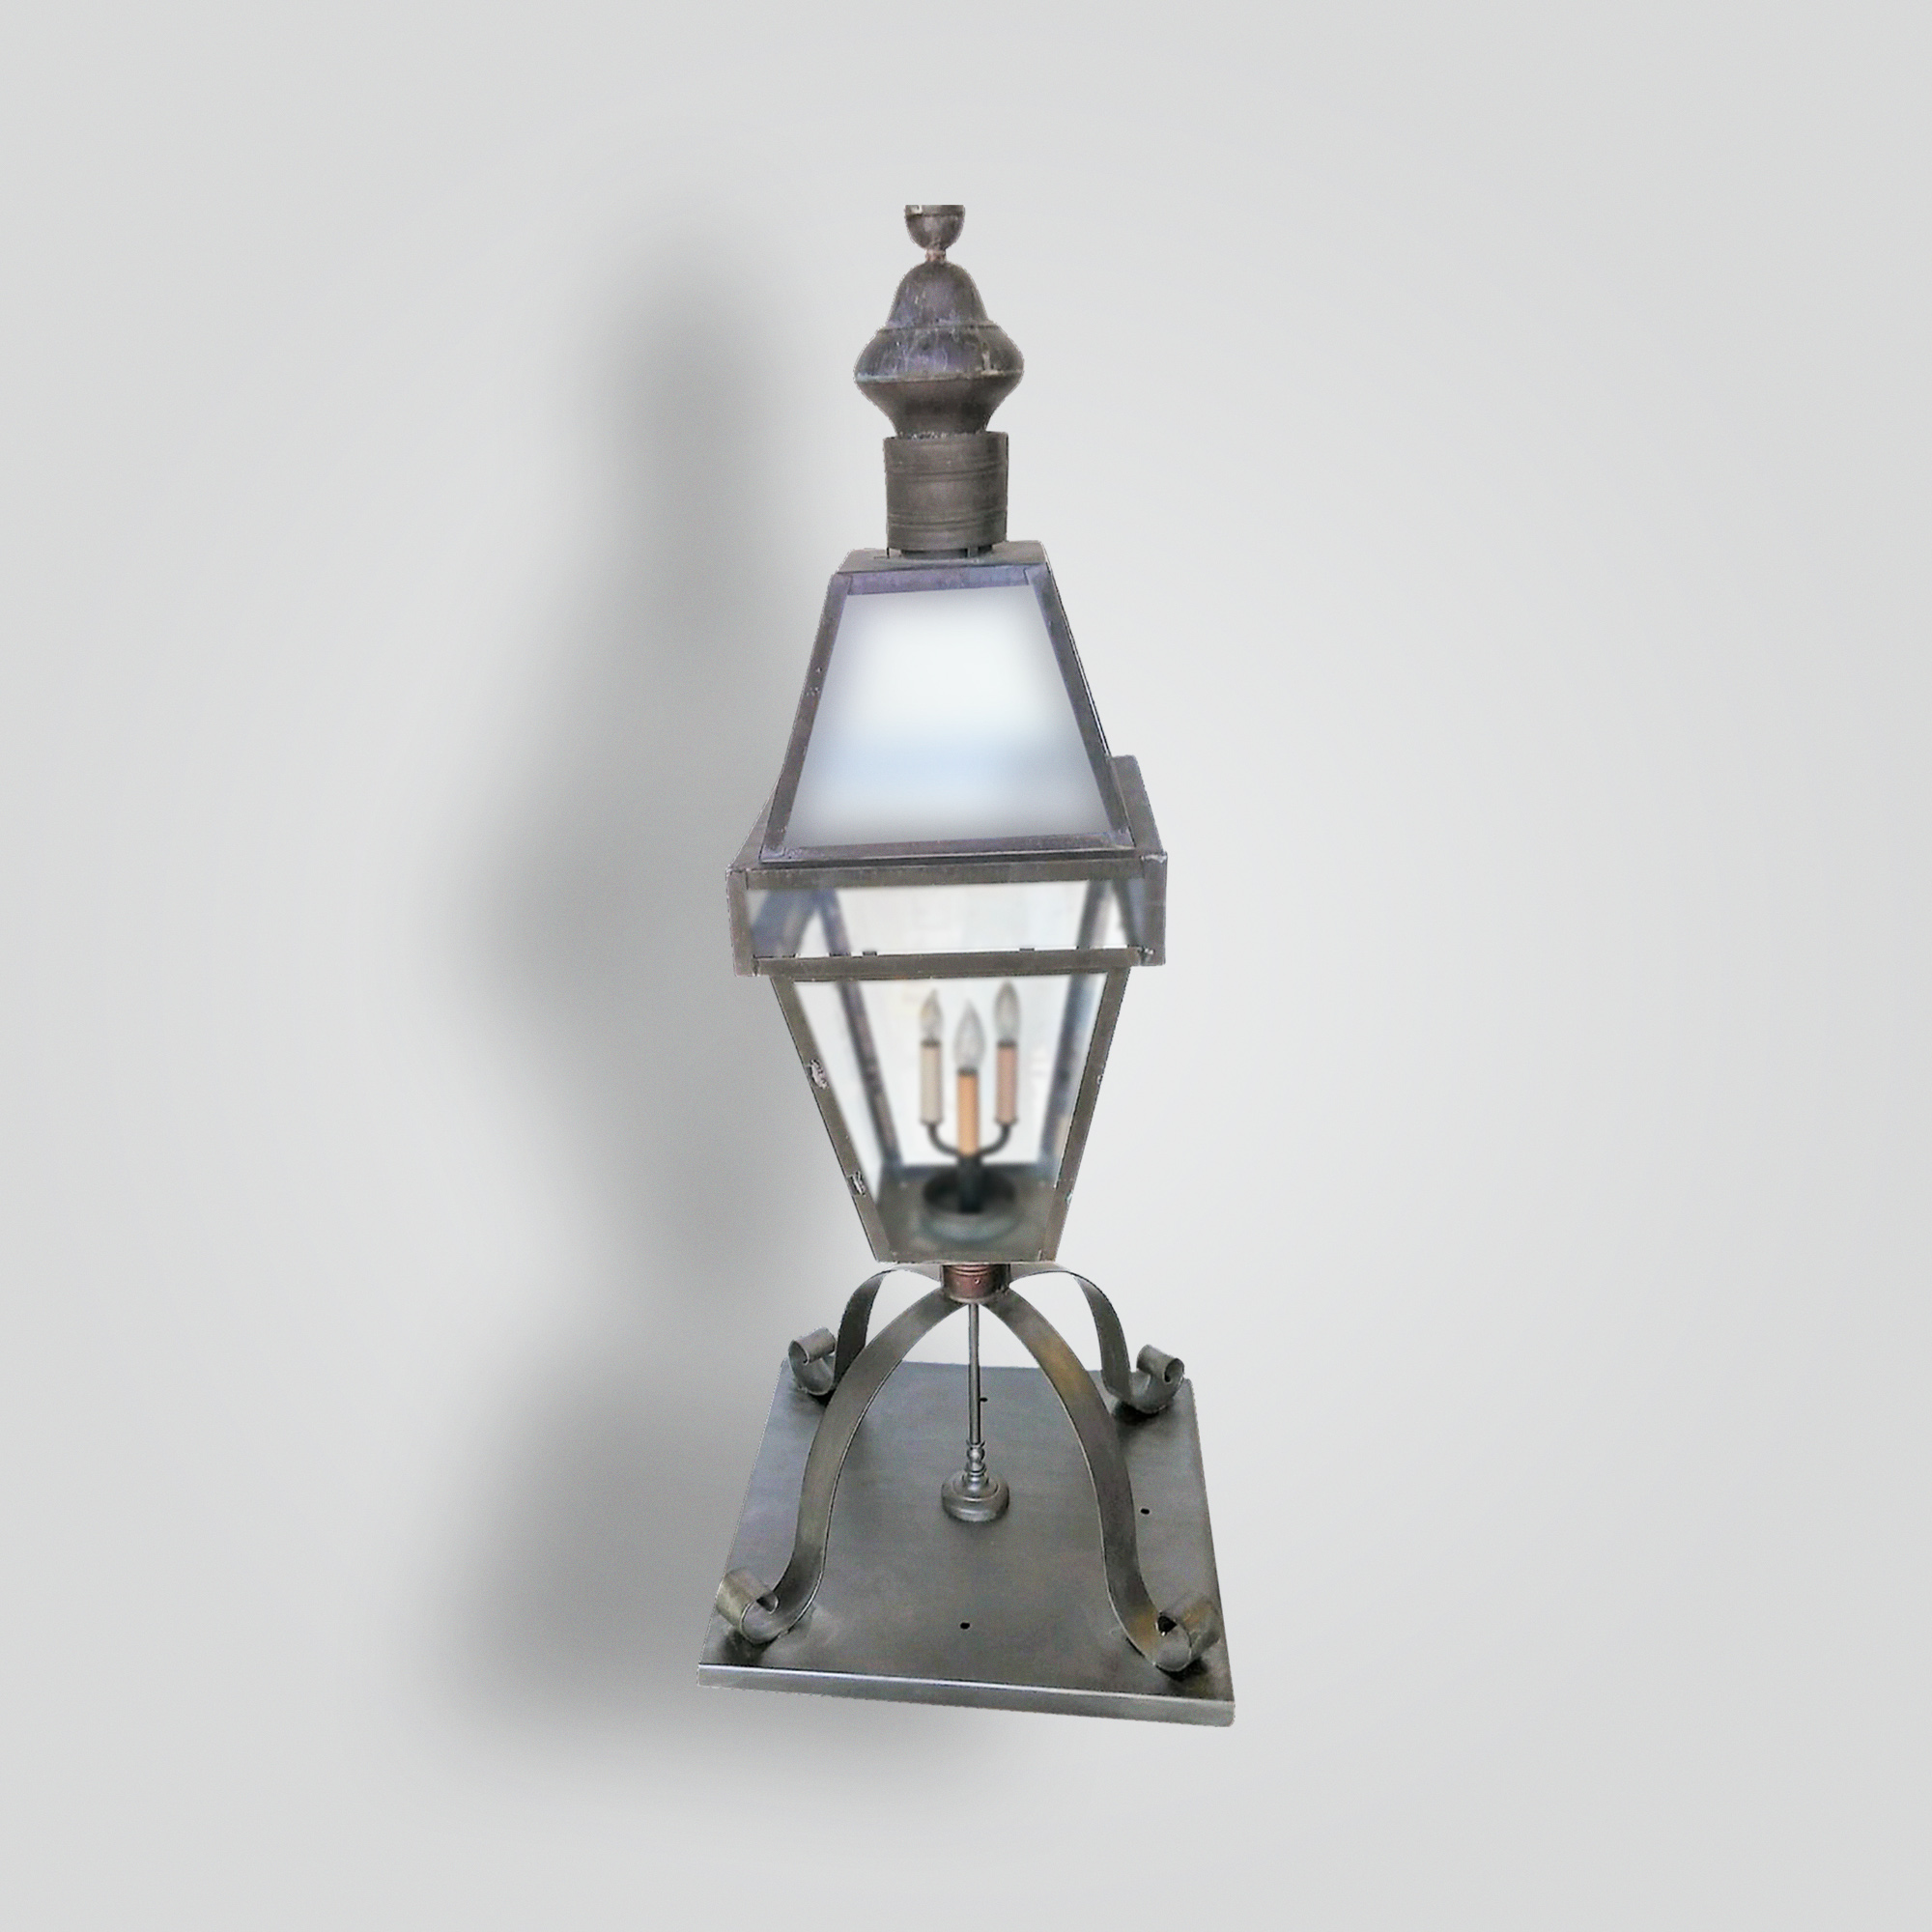 216 – ADG Lighting Collection